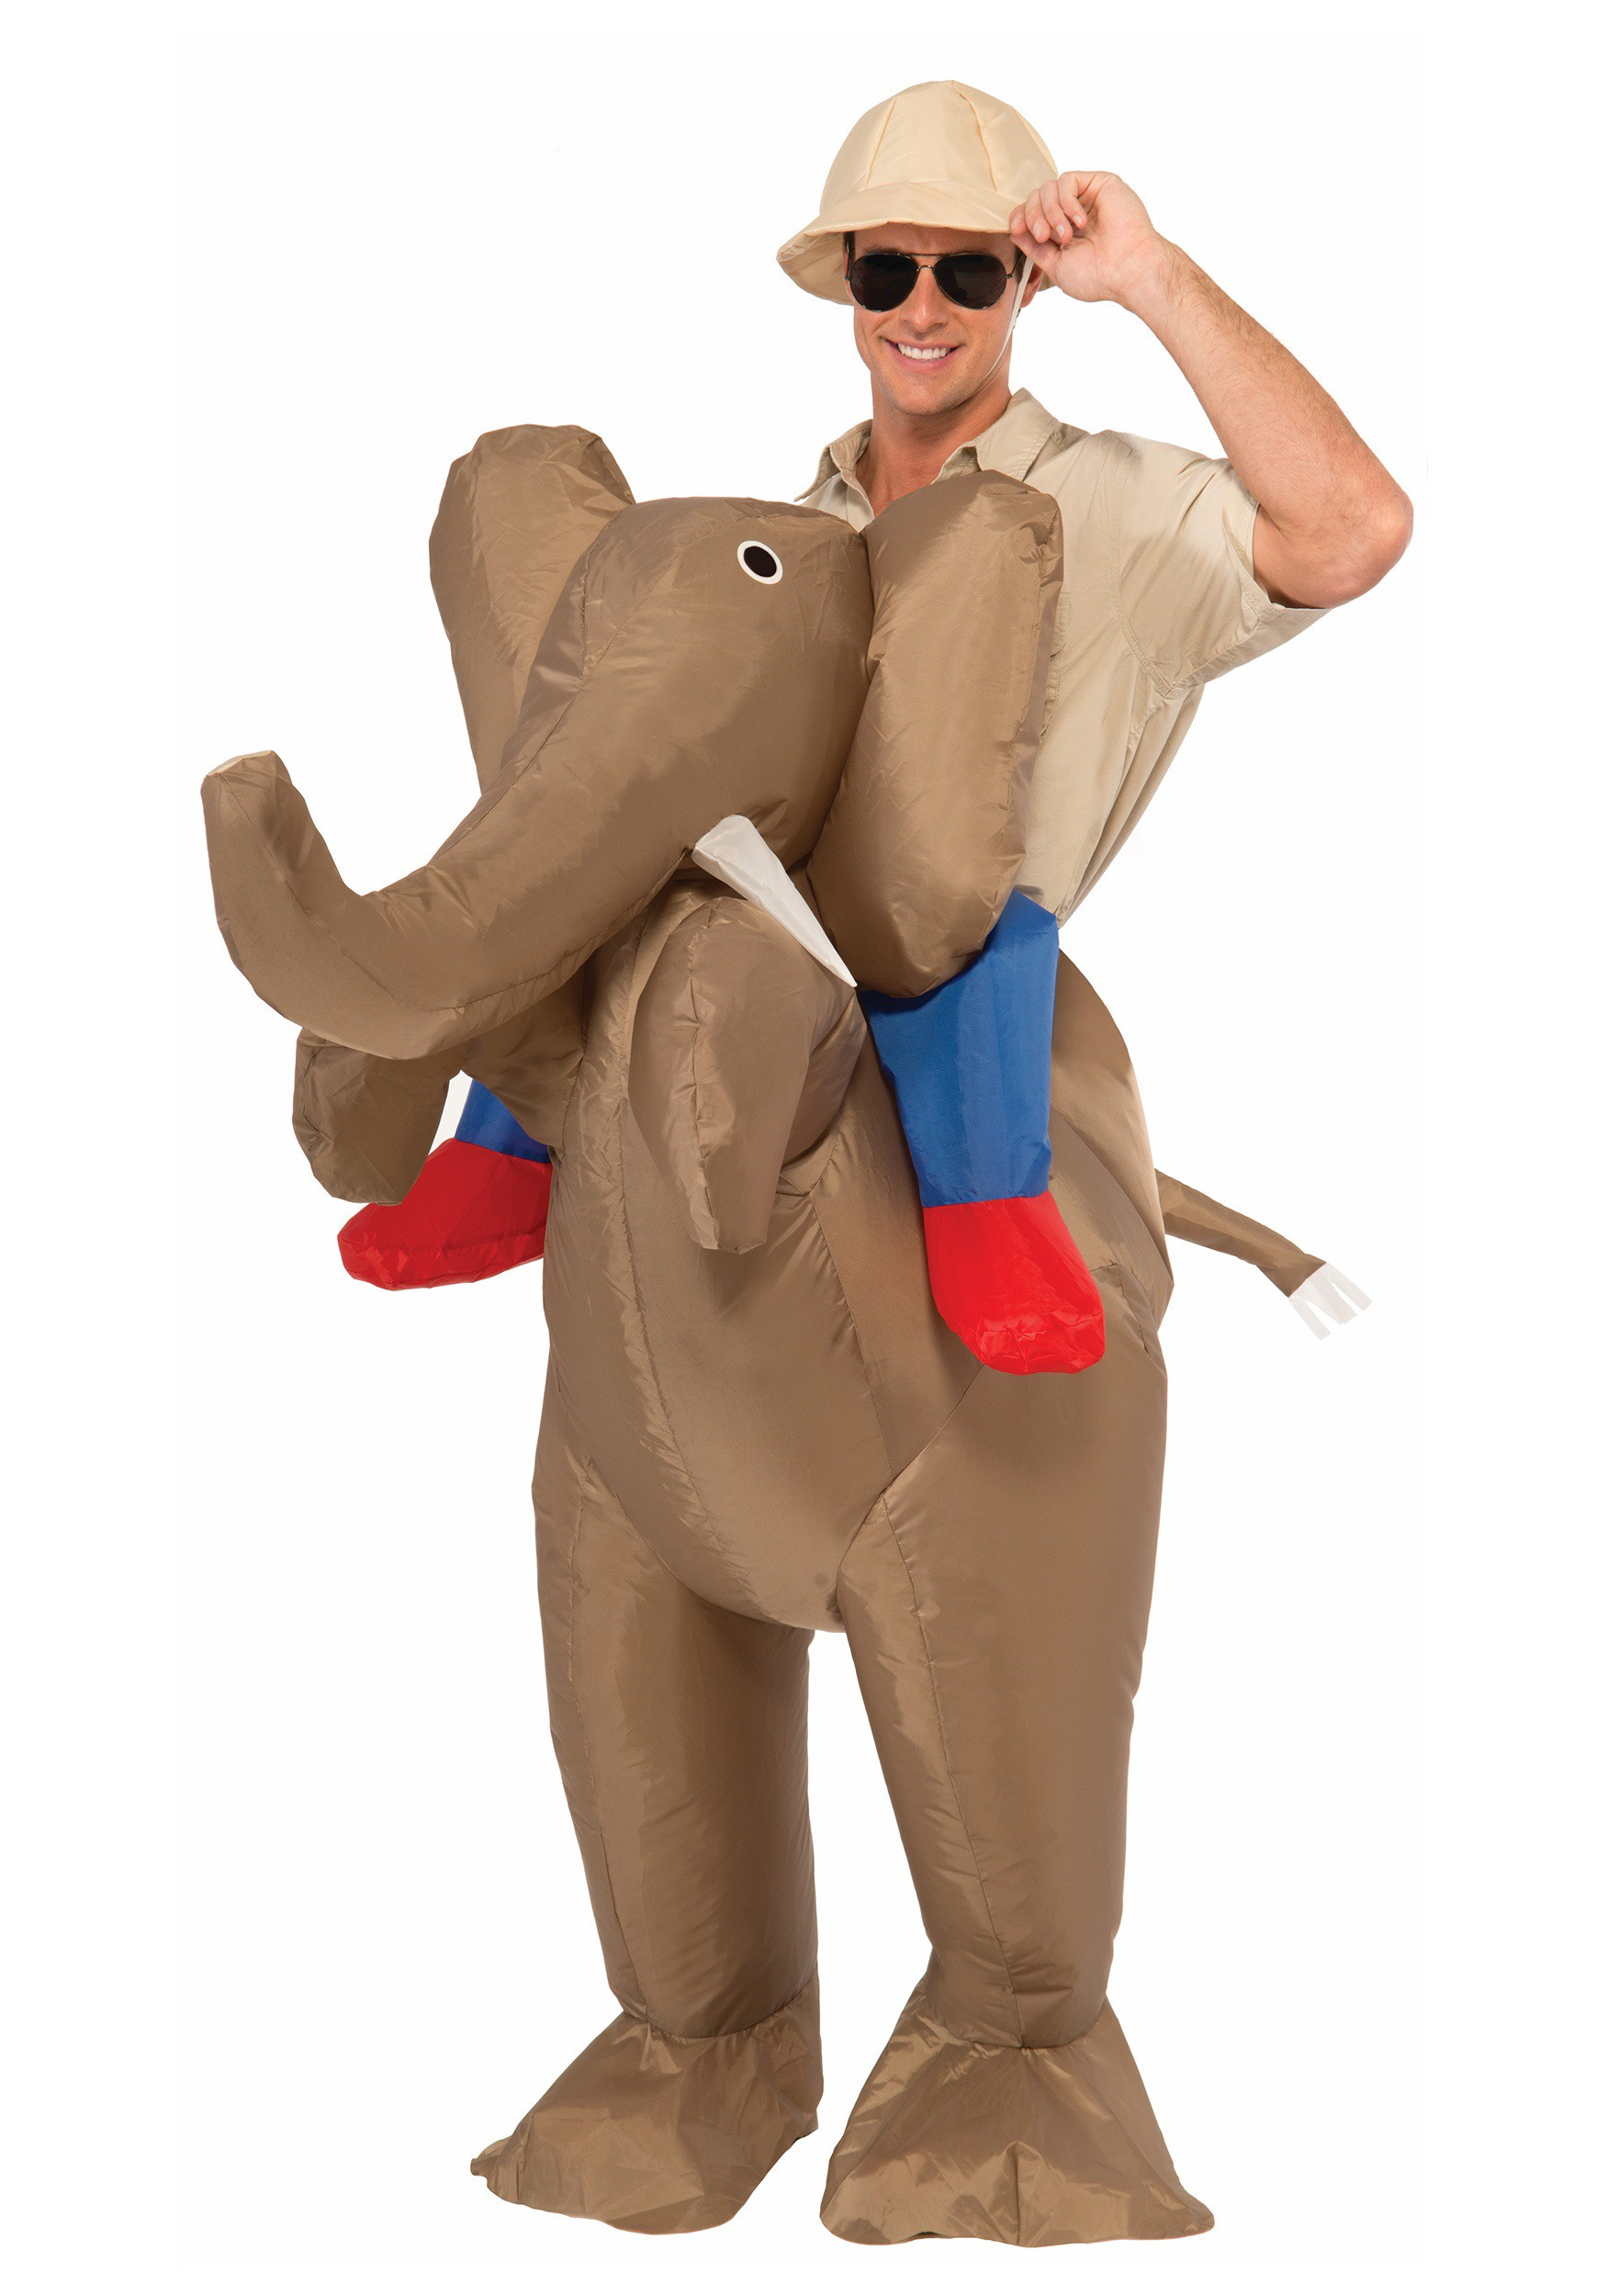 Outdoor inflatable halloween decorations - Outdoor Inflatable Halloween Decorations Adult Inflatable Ride An Elephant Costume Download